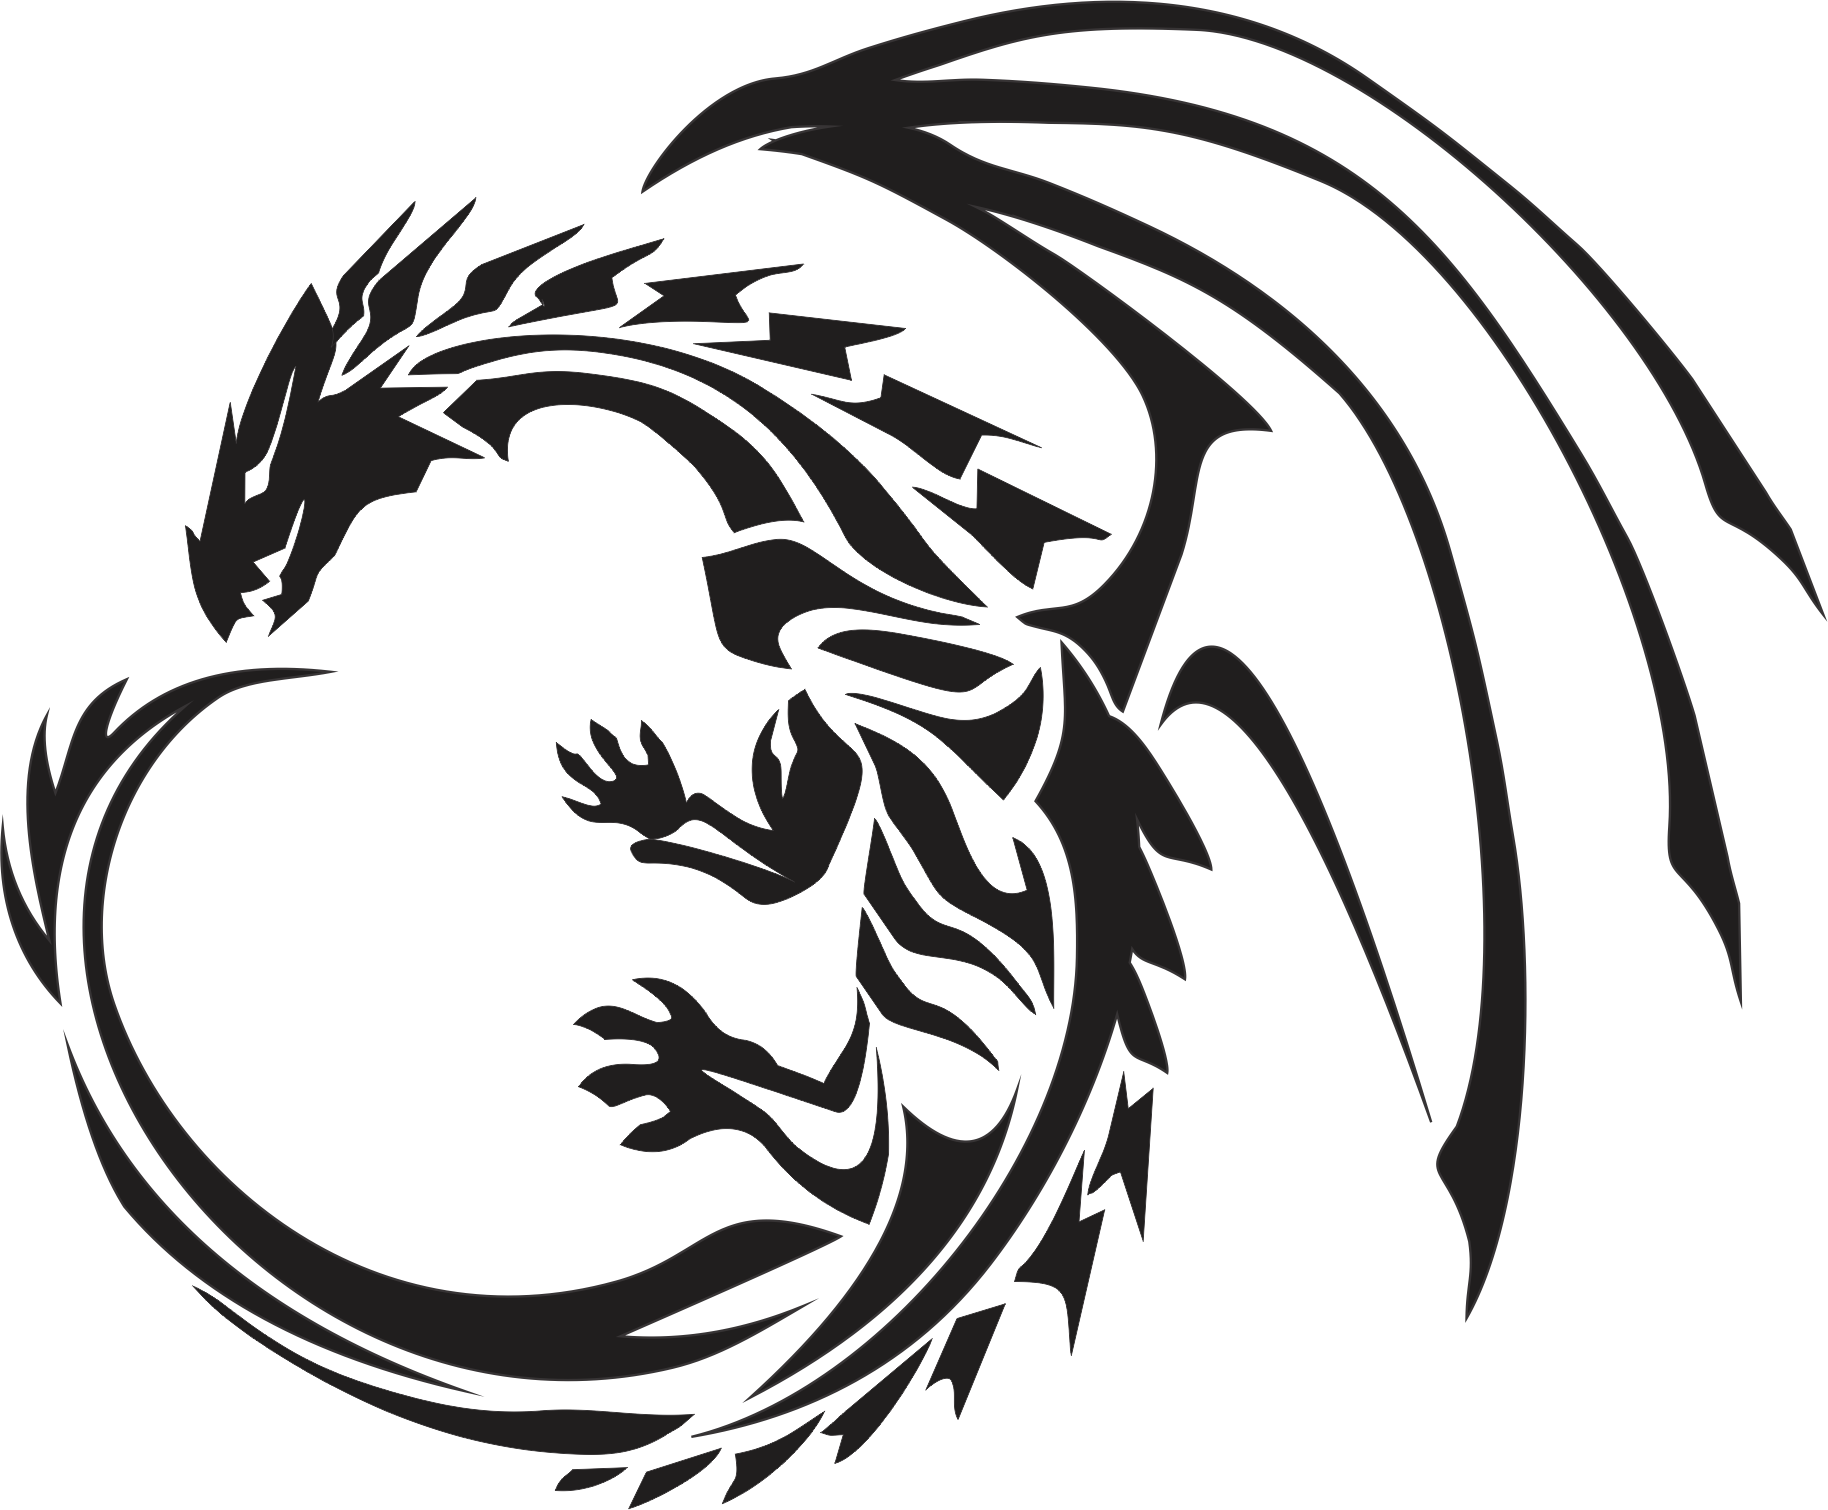 1828x1510 Dragon White Background Images All White Background